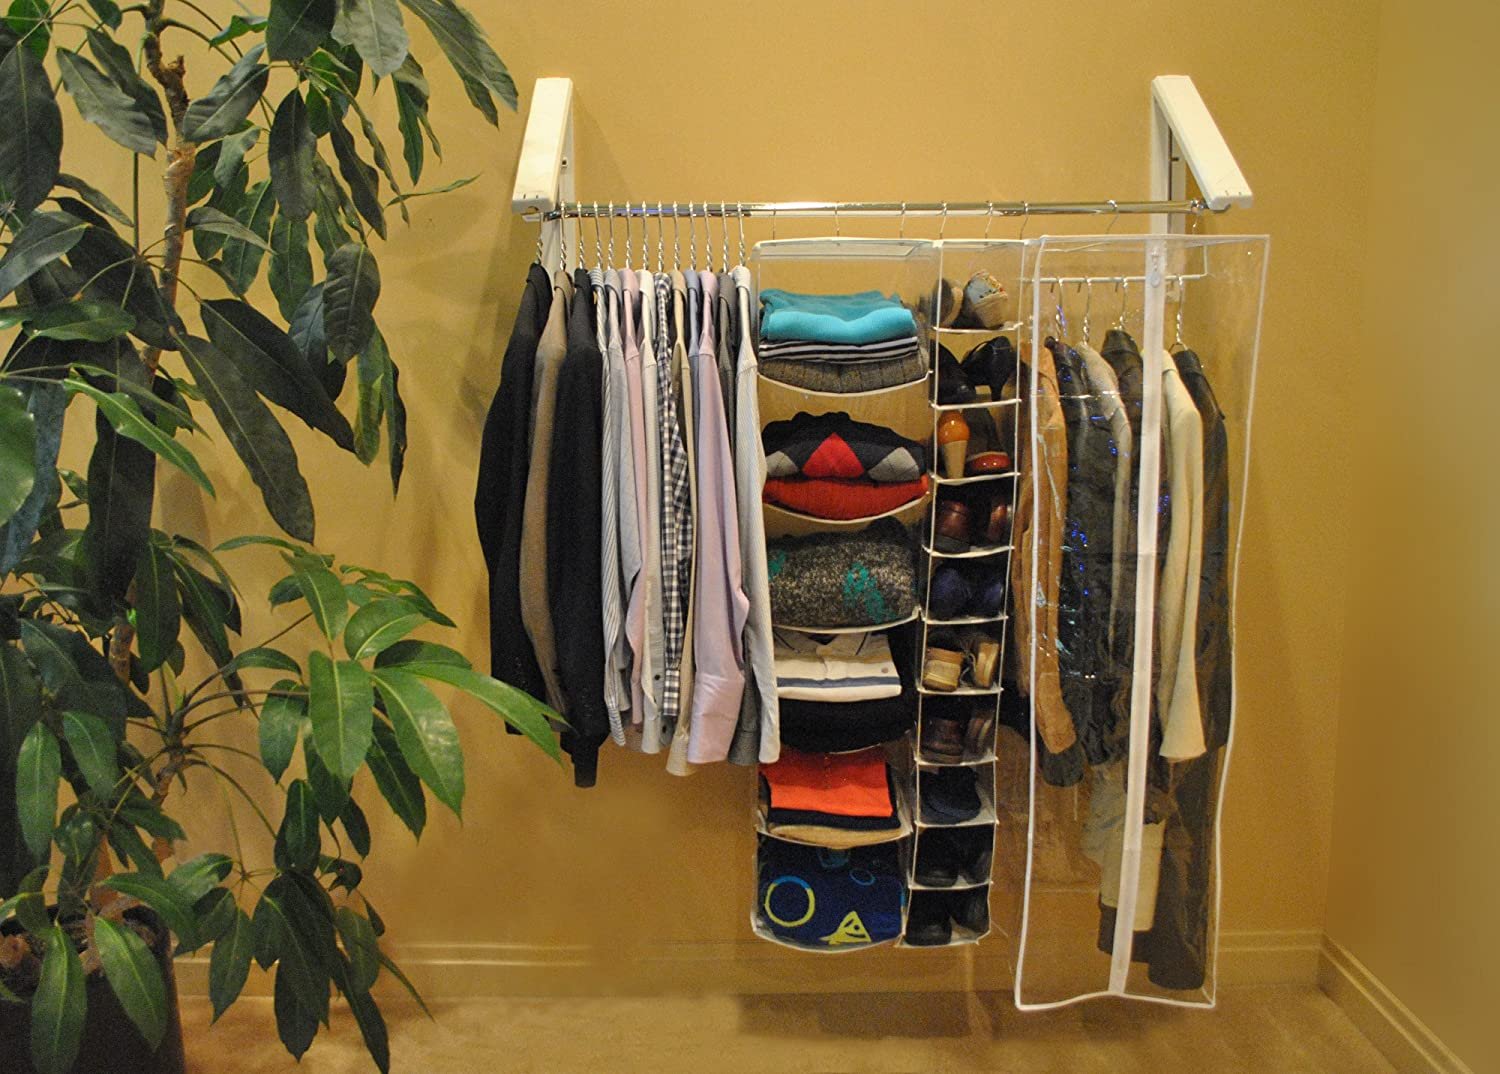 Amazon.com: Arrow Hanger AH3X12 Quik Closet Clothes Storage System: Home &  Kitchen